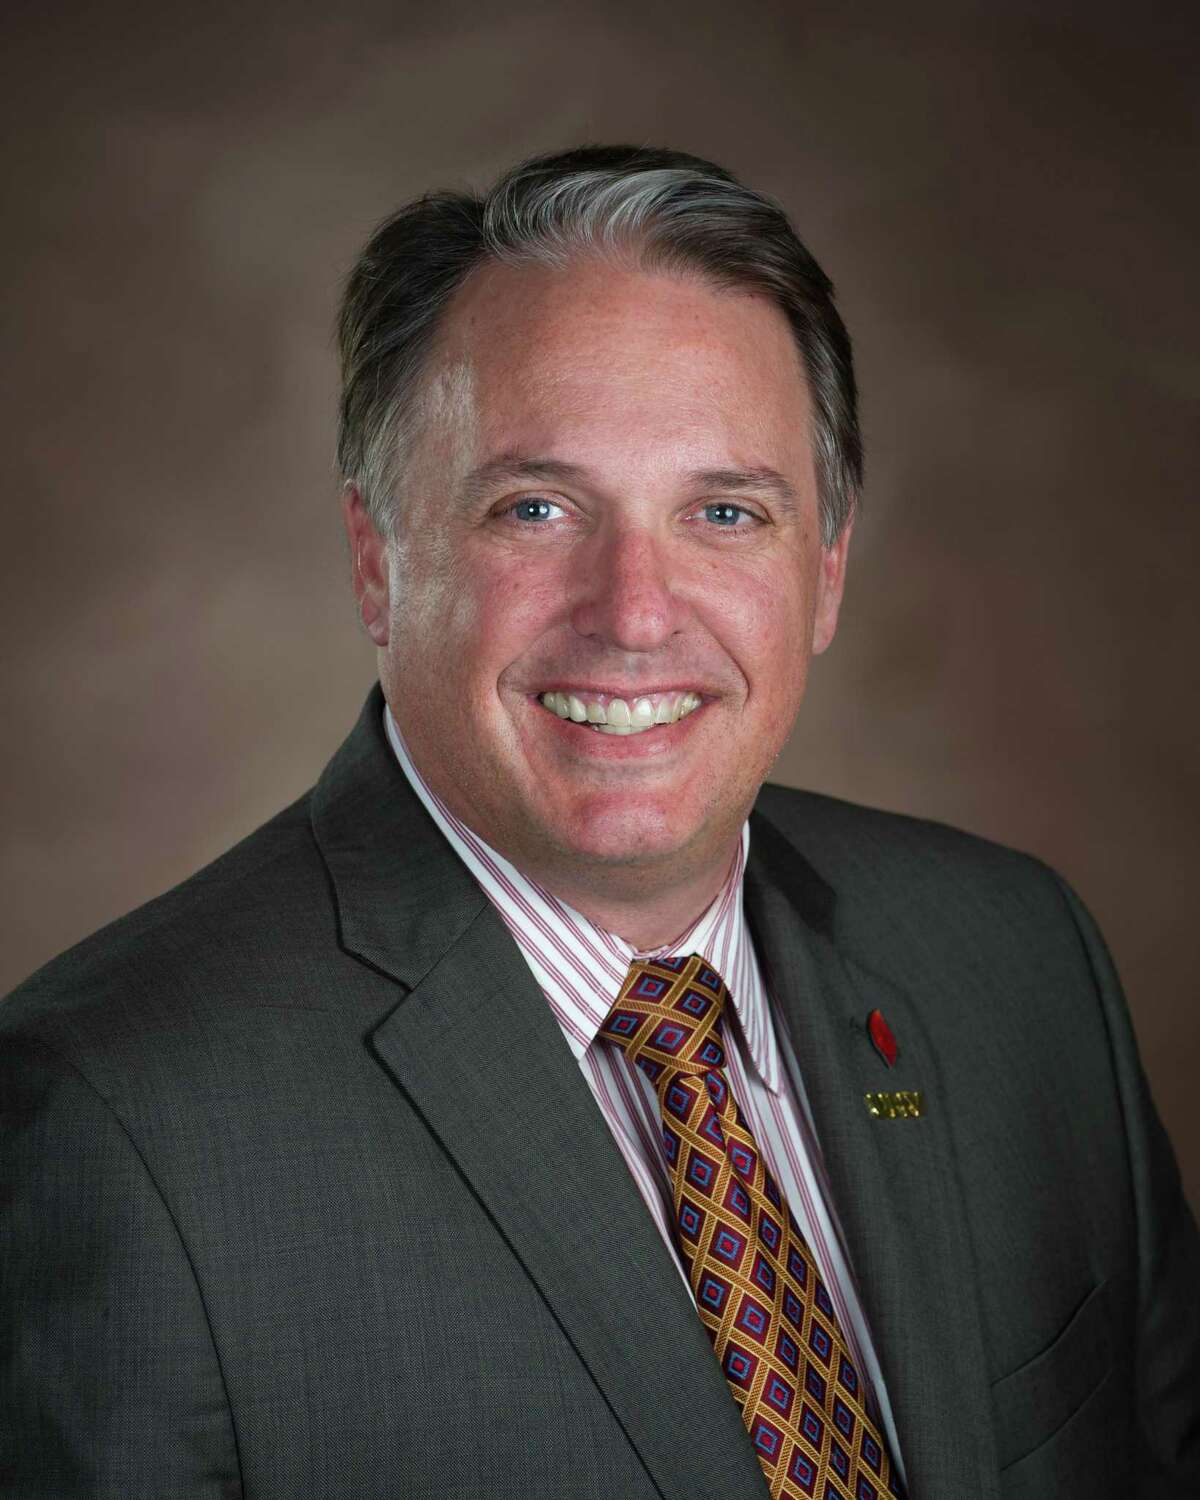 Lance LaCour, Katy Area Economic Development Council president/CEO, plans to step down from his role in spring 2022.